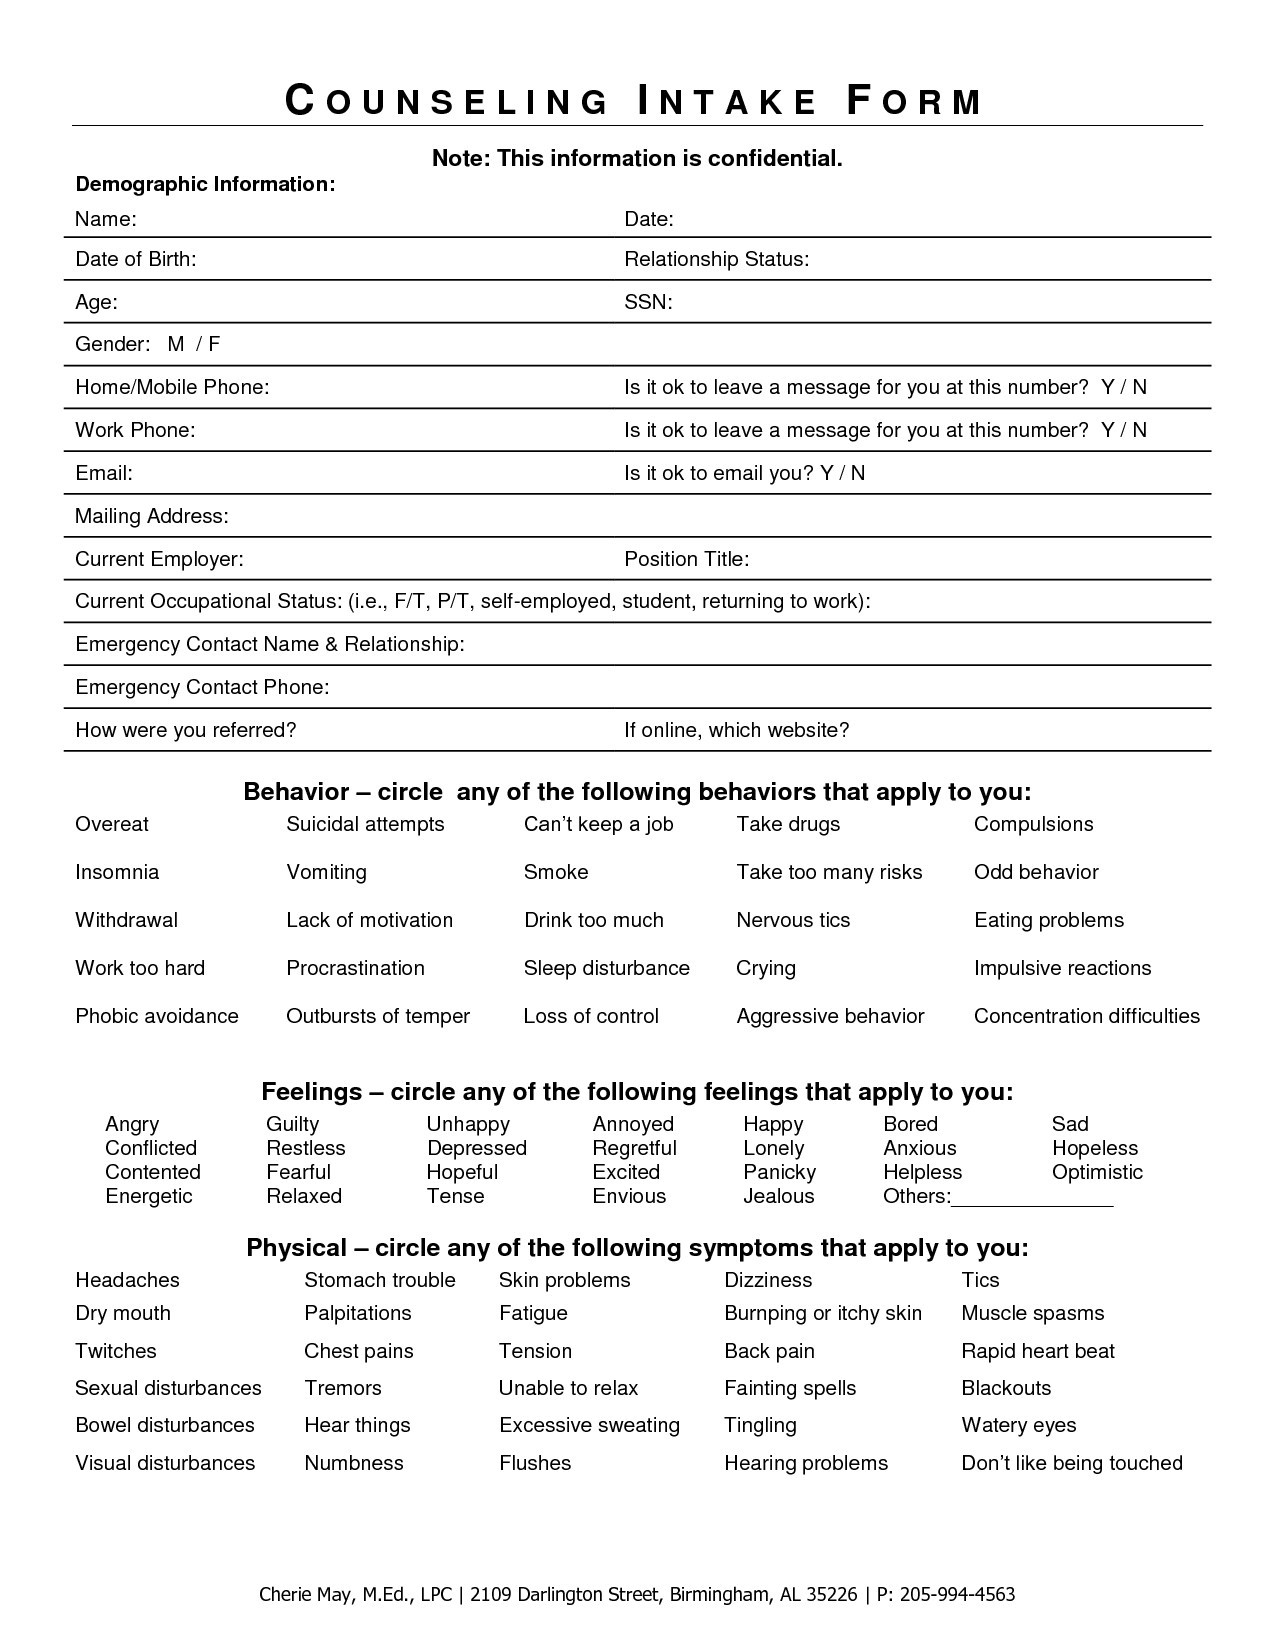 Student Intake Form Template Luxury 20 Fresh Intake Form